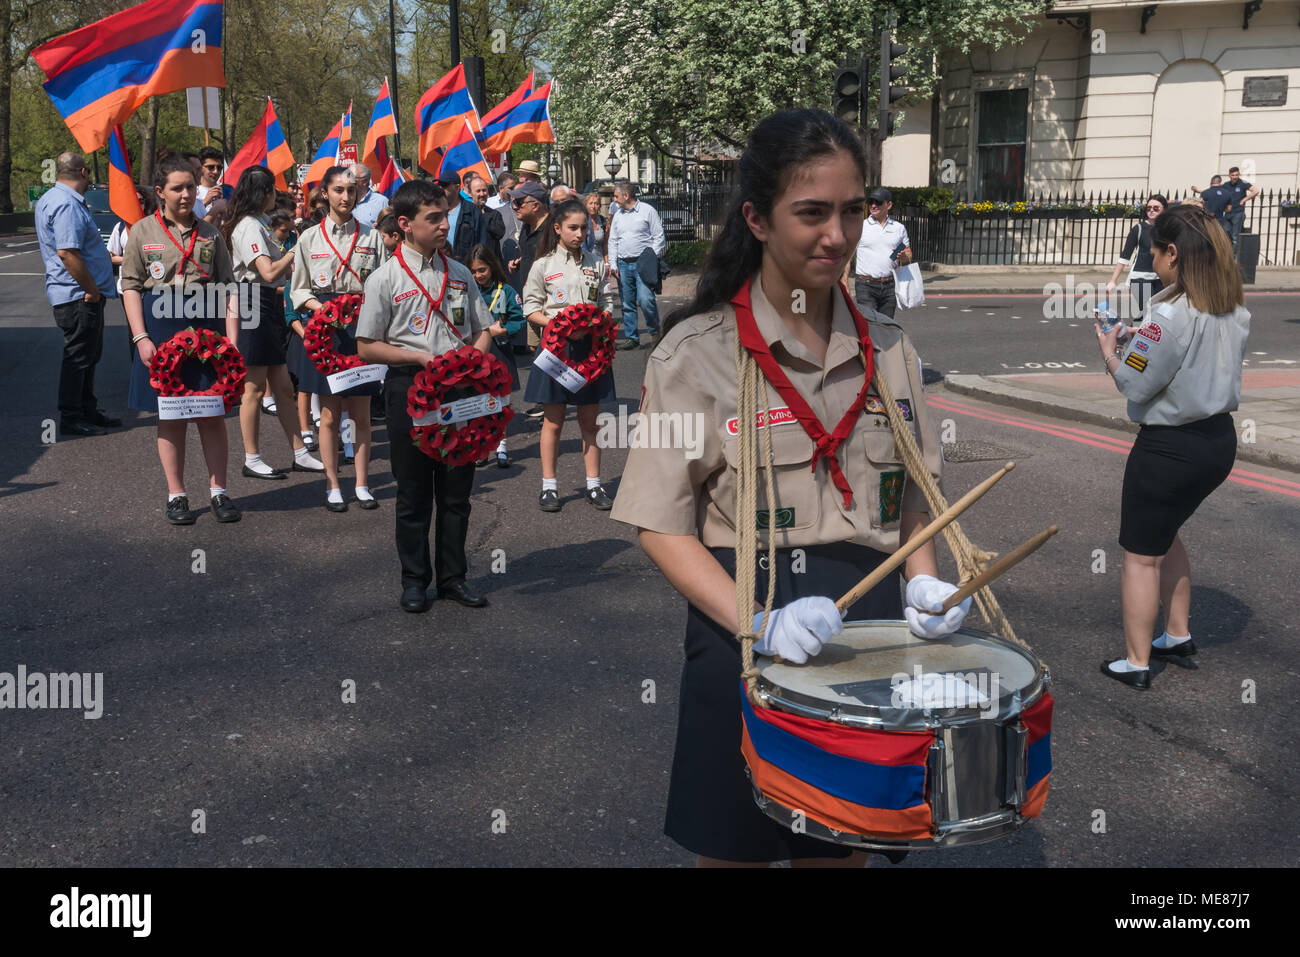 London, UK. 21st April 2018. Armenian Scouts with a drummer and four scouts carrying wreaths leading the Armenian march through London from Marble Arch to the Cenotaph at the start of a series of events commemorating the 103rd anniversary of the beginning of the Armenian Genocide. They demand the UK follow the lead of many other countries and recognise the Armenian genocide. Between 1915 and 1923 Turkey killed 1.5m Armenians, around 70% of the Armenian population, but Turkey still refuses to accept these mass killings as genocide. Credit: Peter Marshall/Alamy Live News - Stock Image